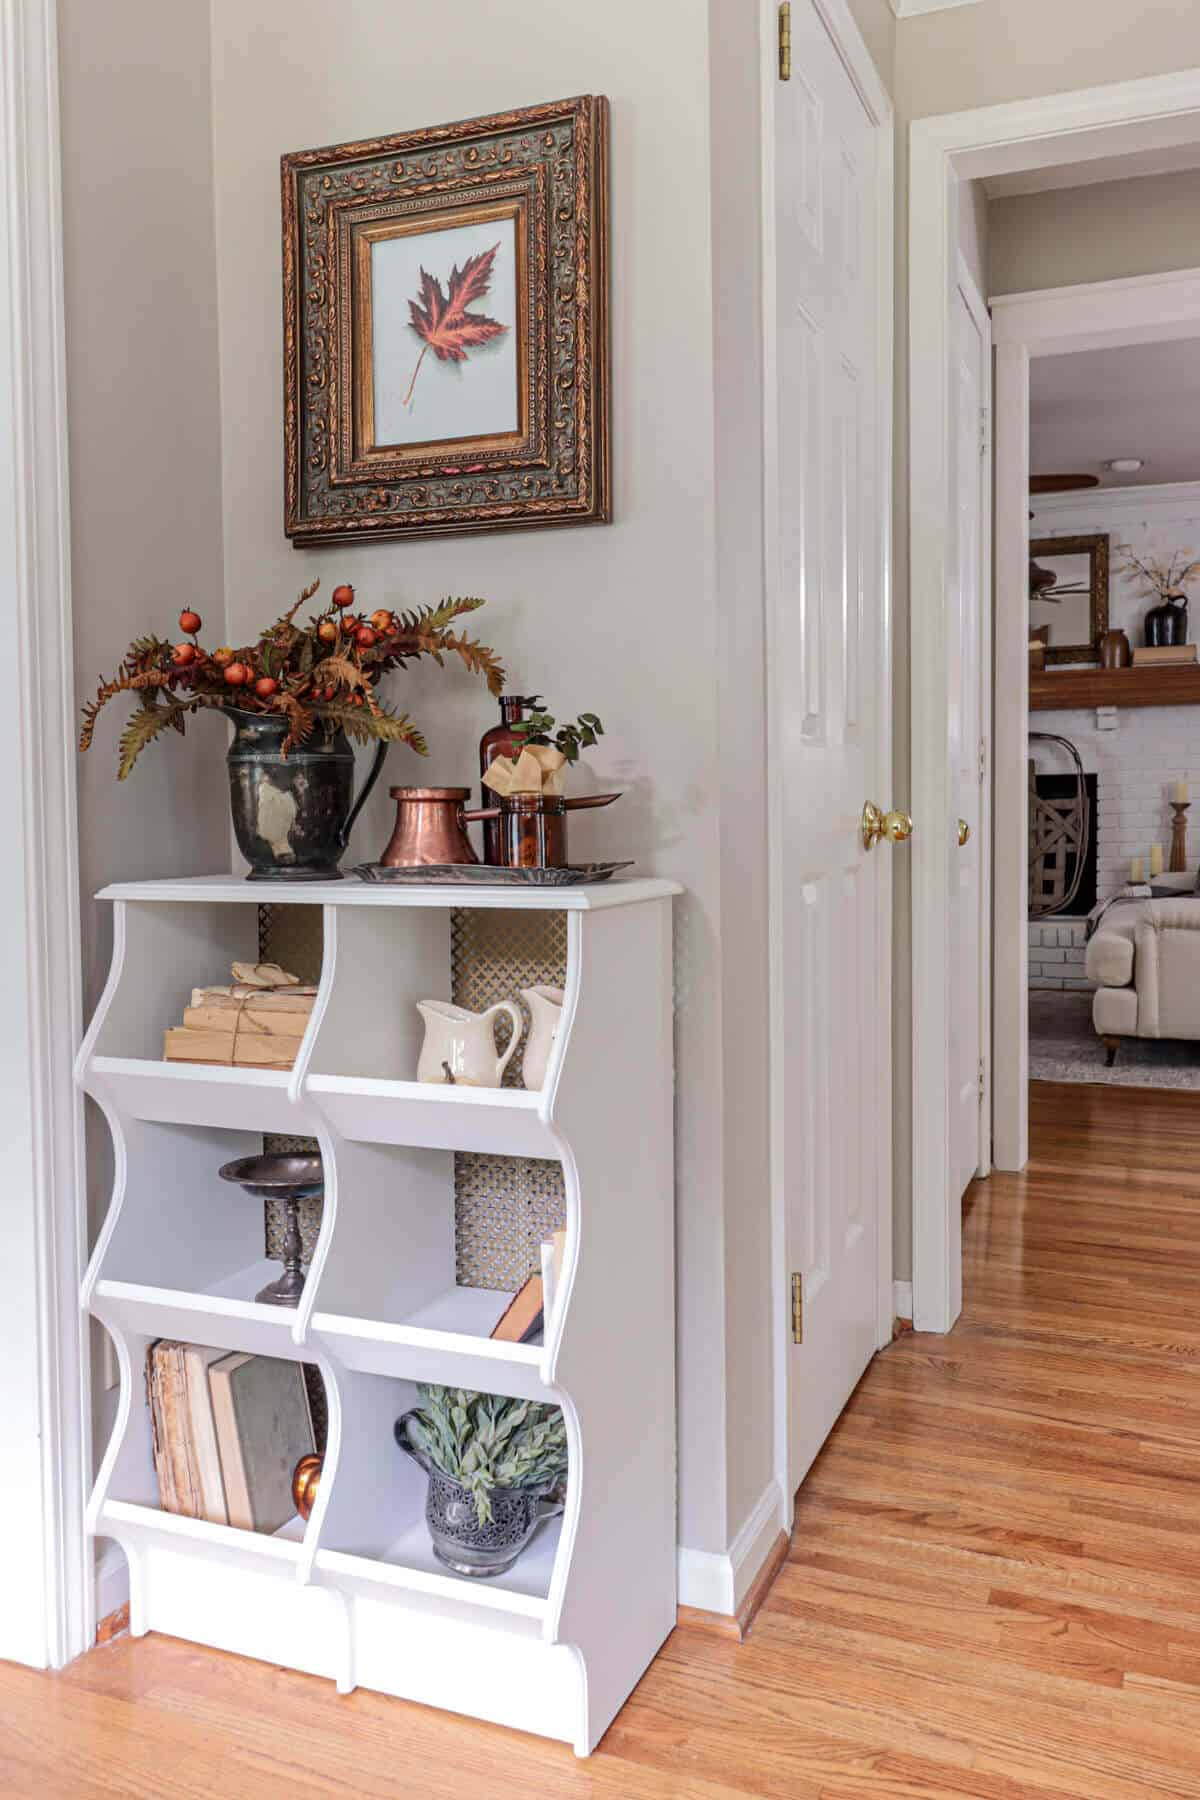 chicken coop cabinet styled for fall